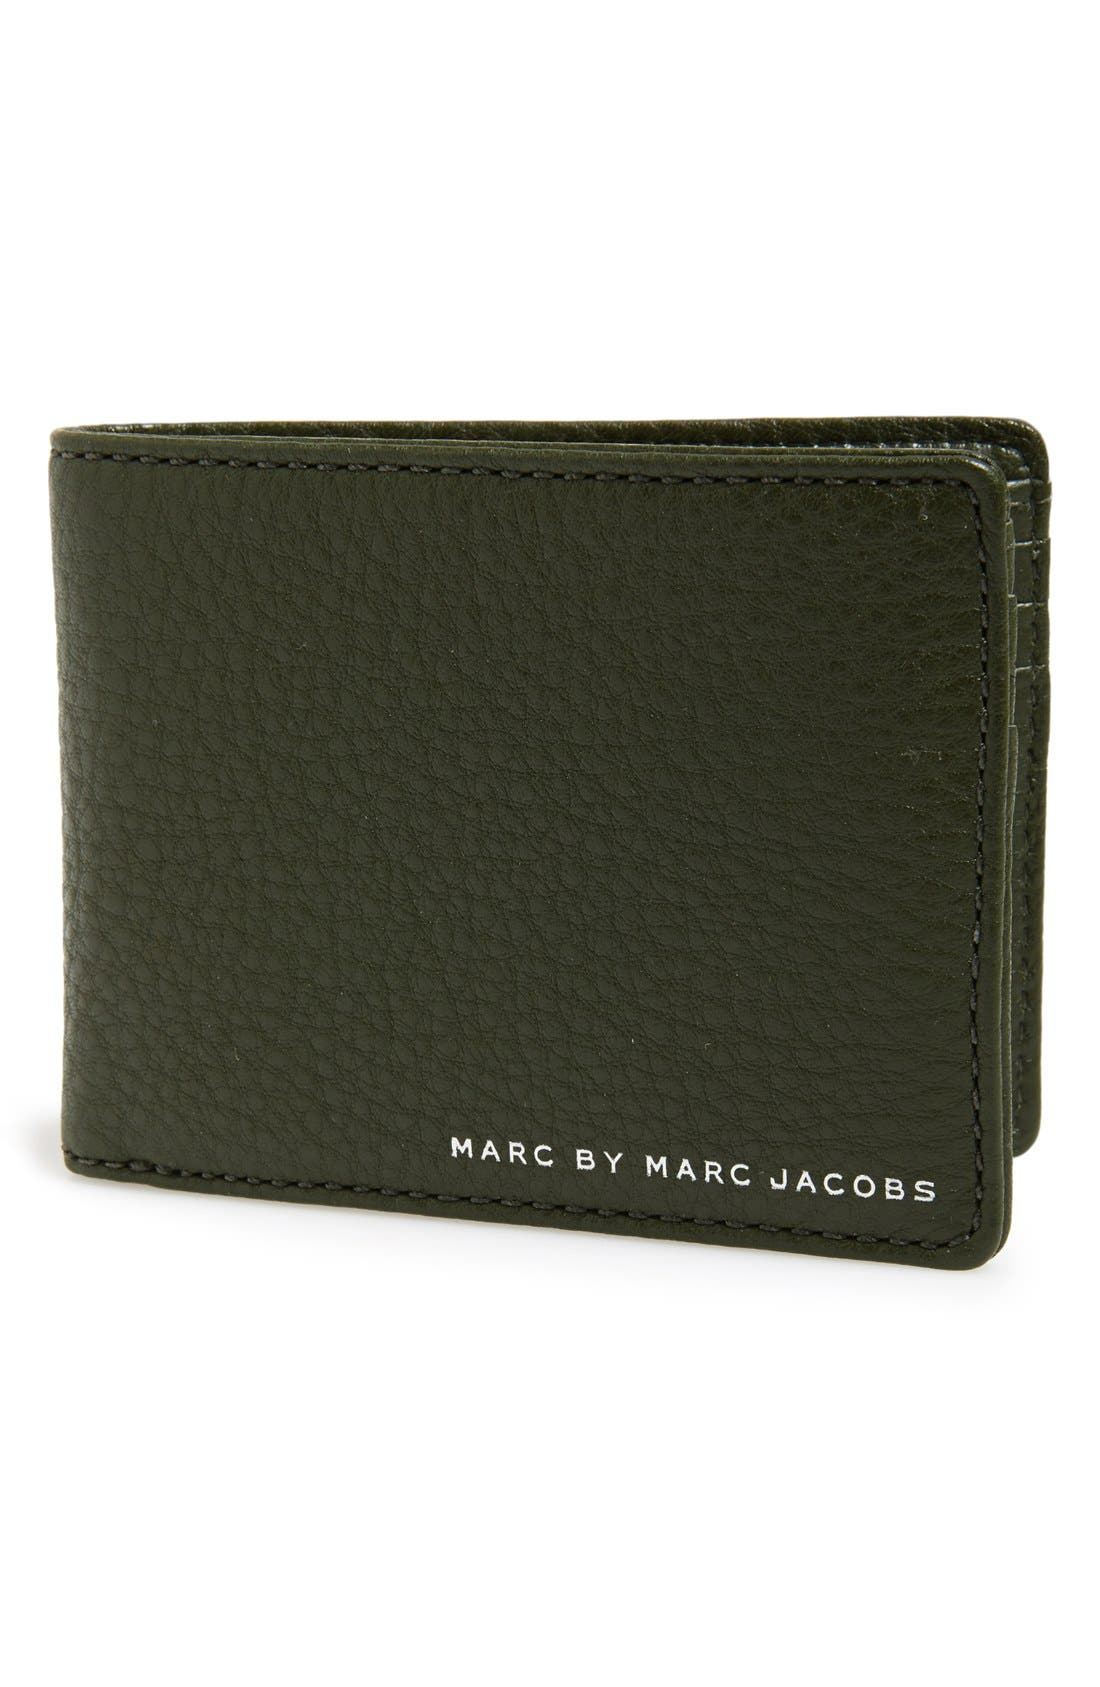 Alternate Image 1 Selected - MARC BY MARC JACOBS Leather Billfold Wallet